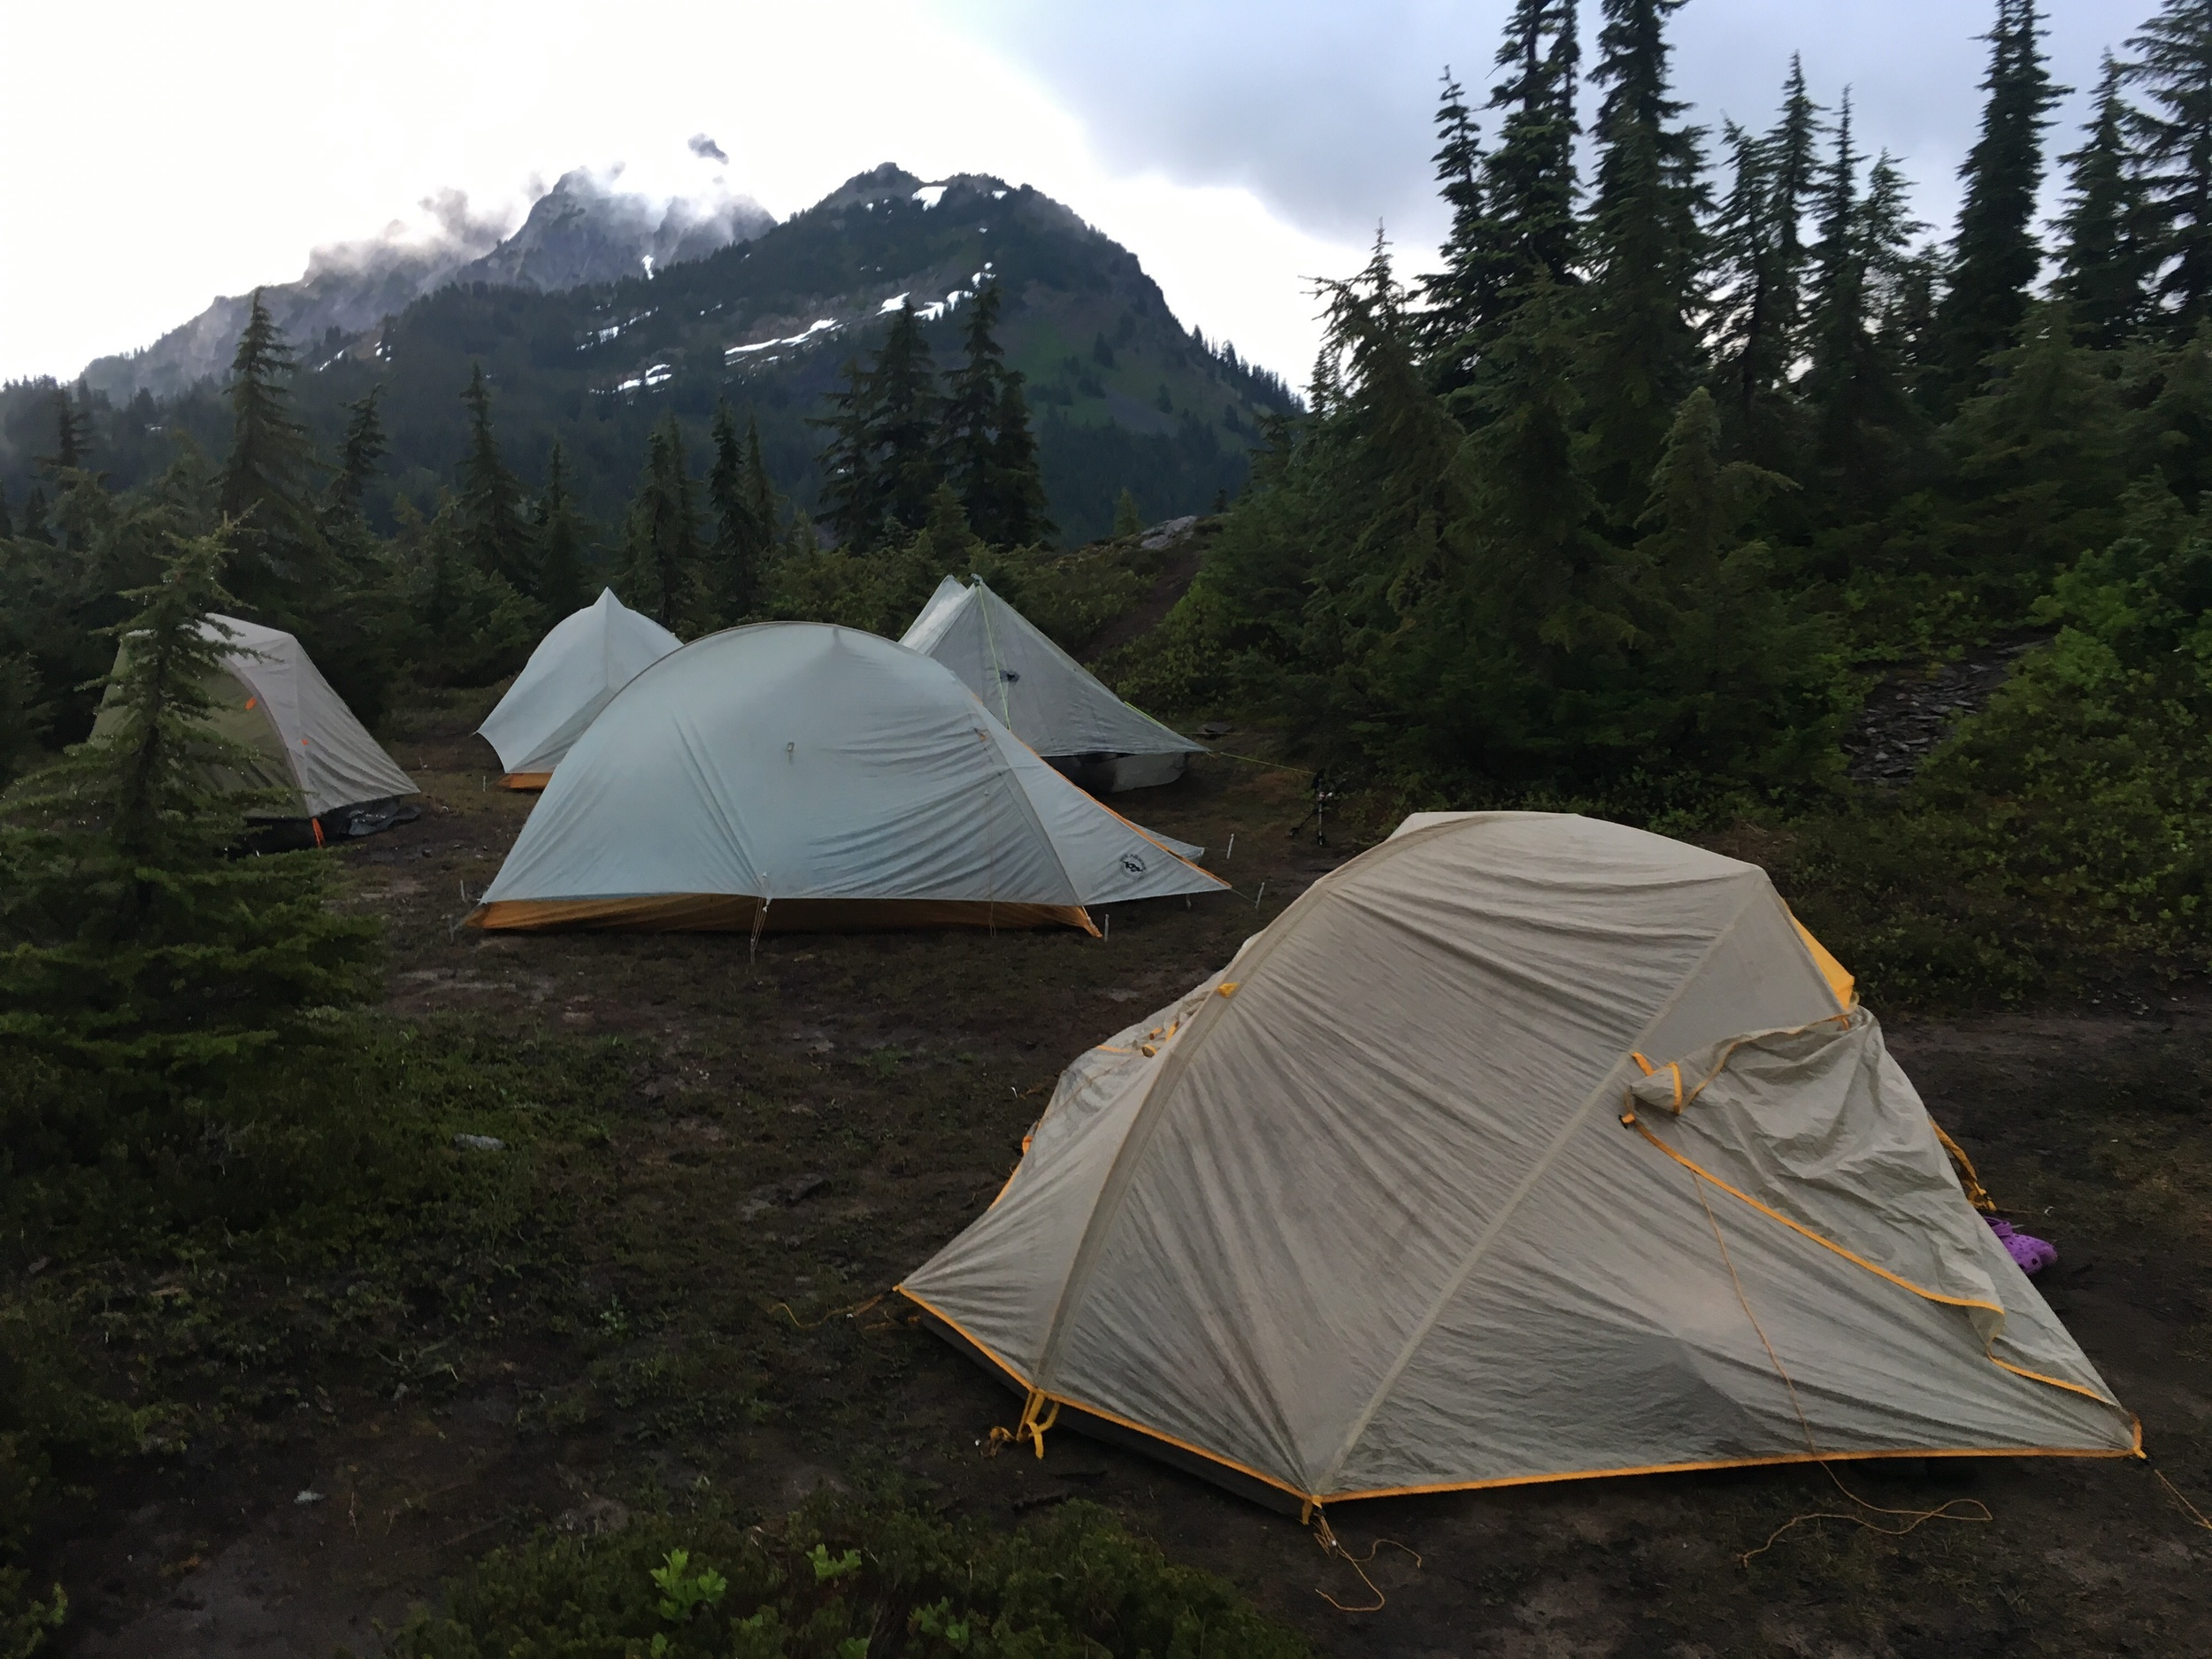 And our tent makes 5. Tent City, Park Lakes Basin on Night 17.